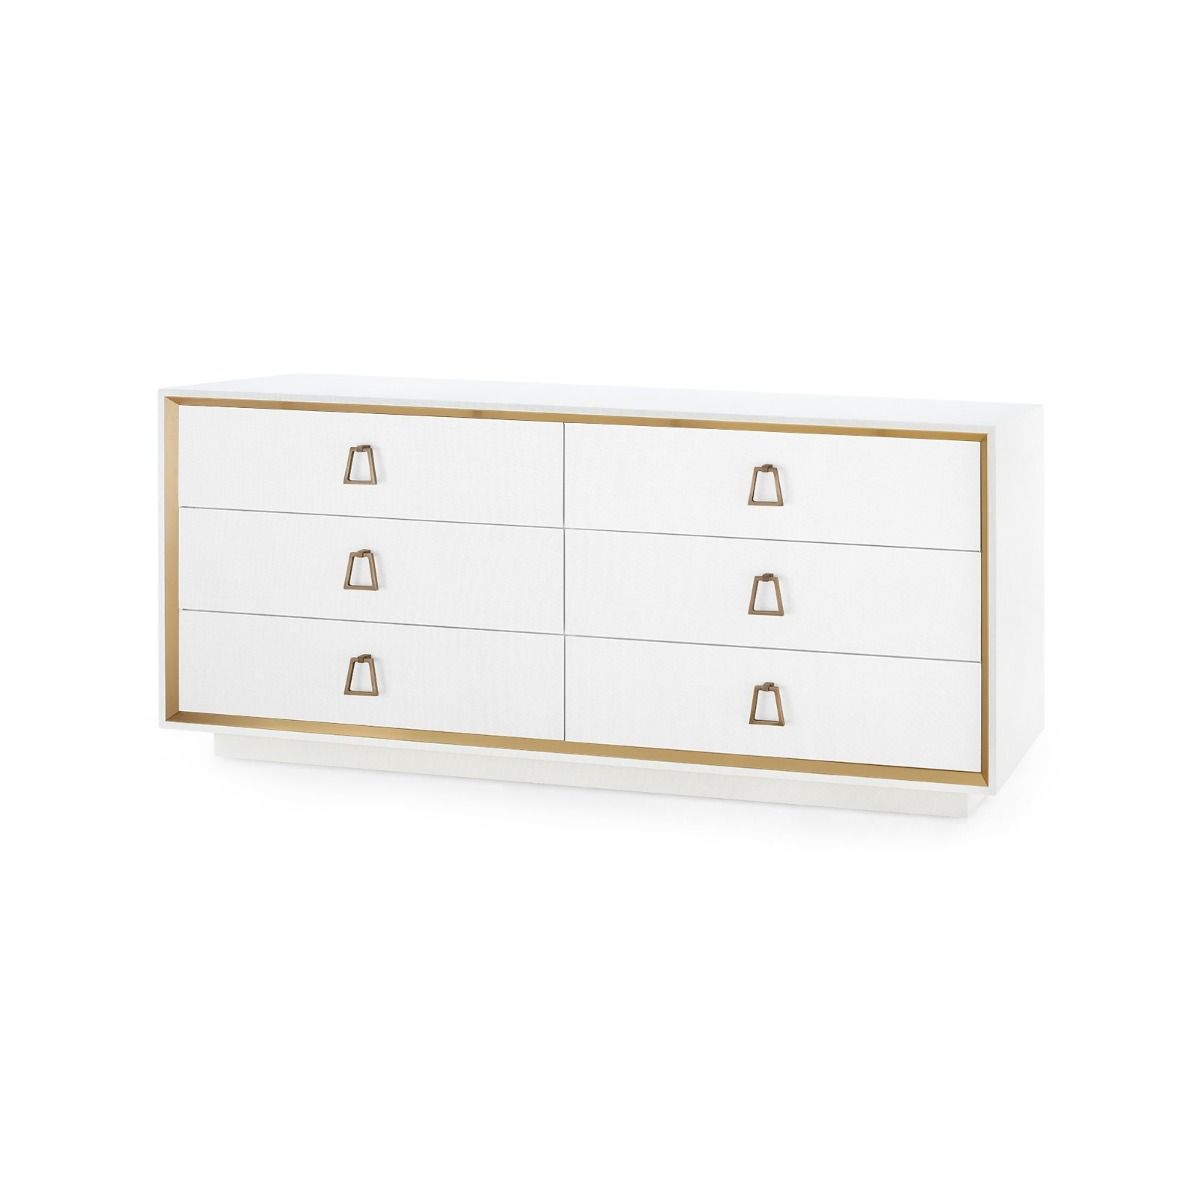 Bungalow 5 - ANSEL EXTRA LARGE 6-DRAWER, WHITE